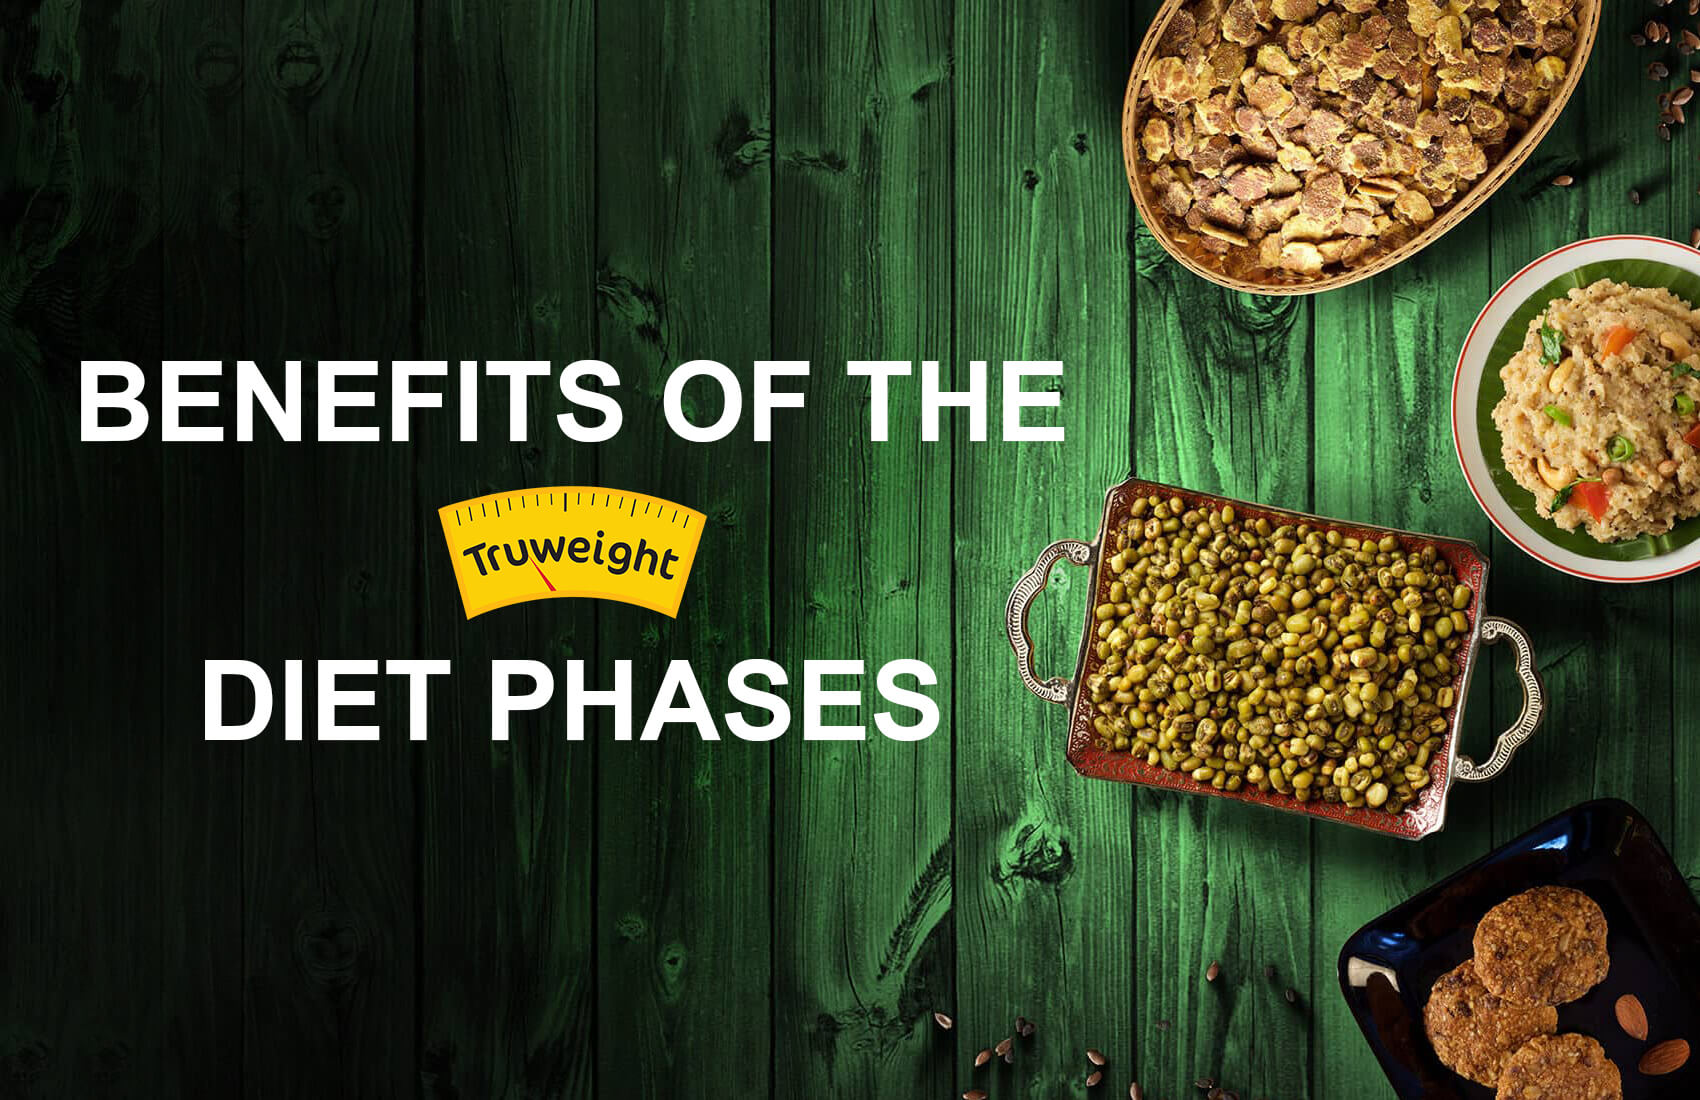 Truweight's Different Diet Phases To Lose Weight